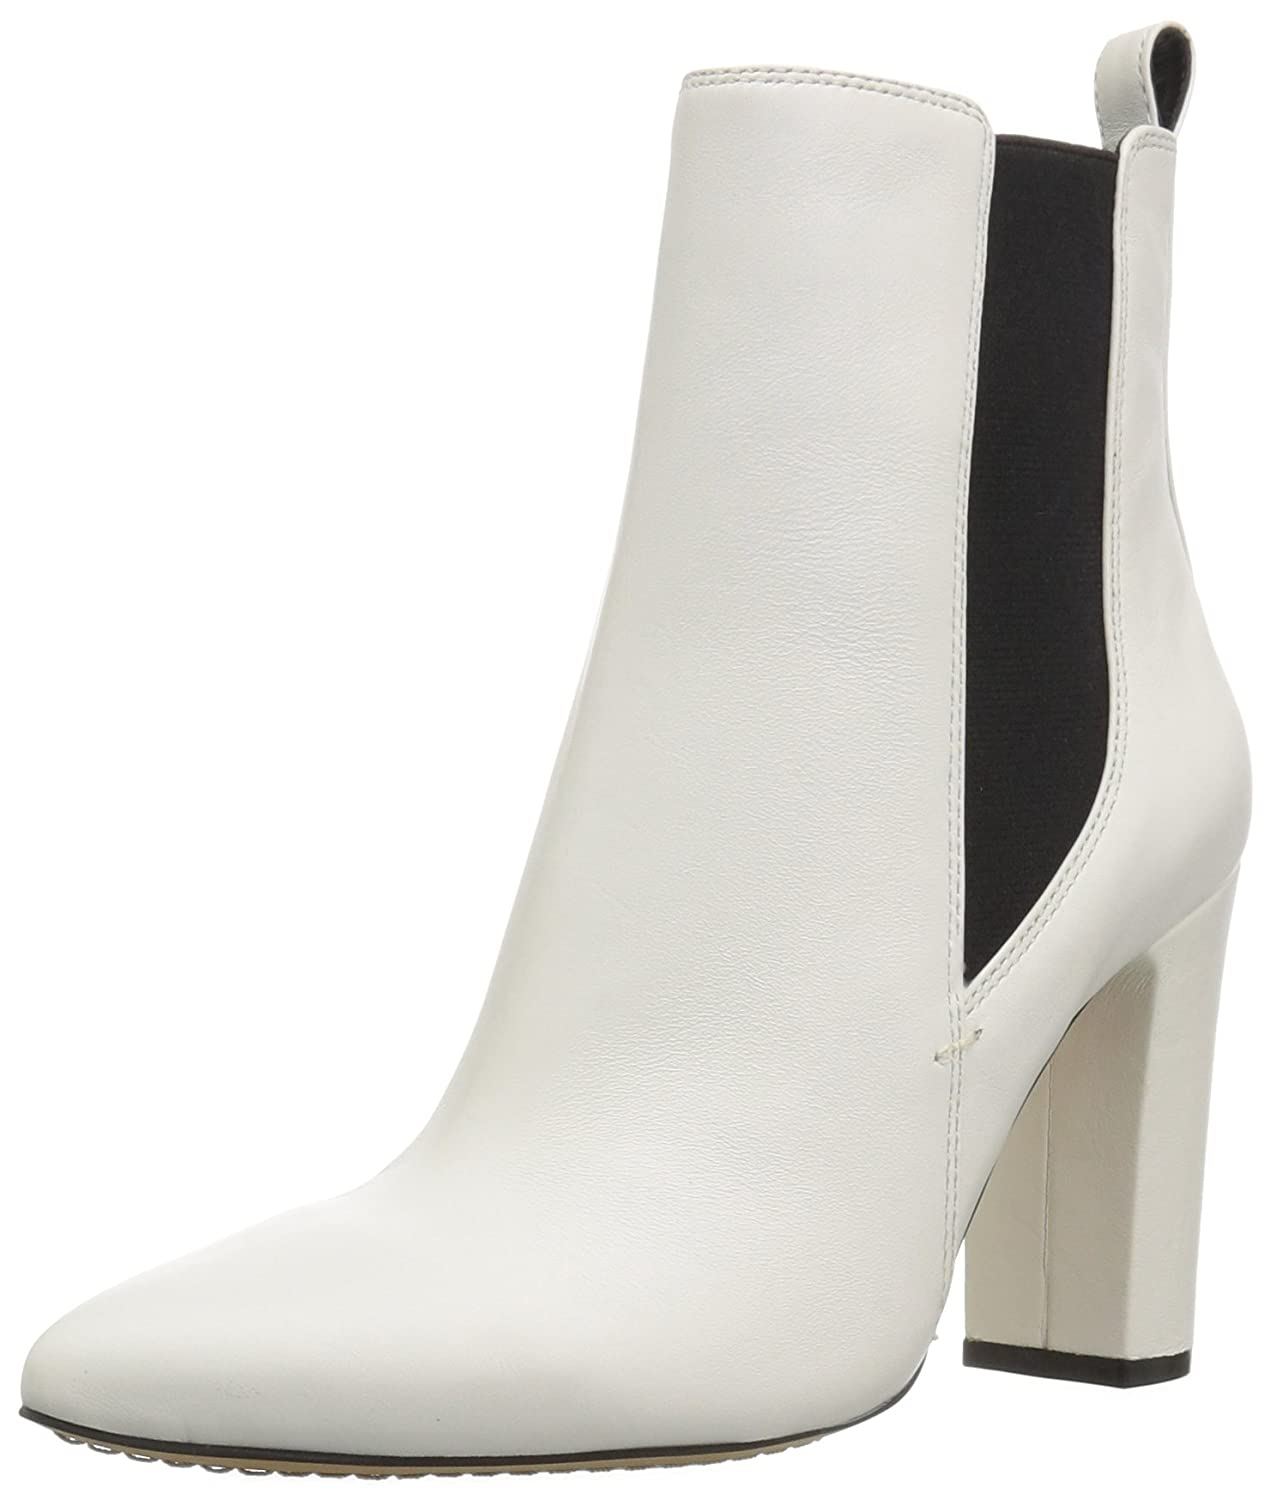 Vince Camuto Women's Britsy Ankle Boot B072FP89WC 11 B(M) US|Baby Milk